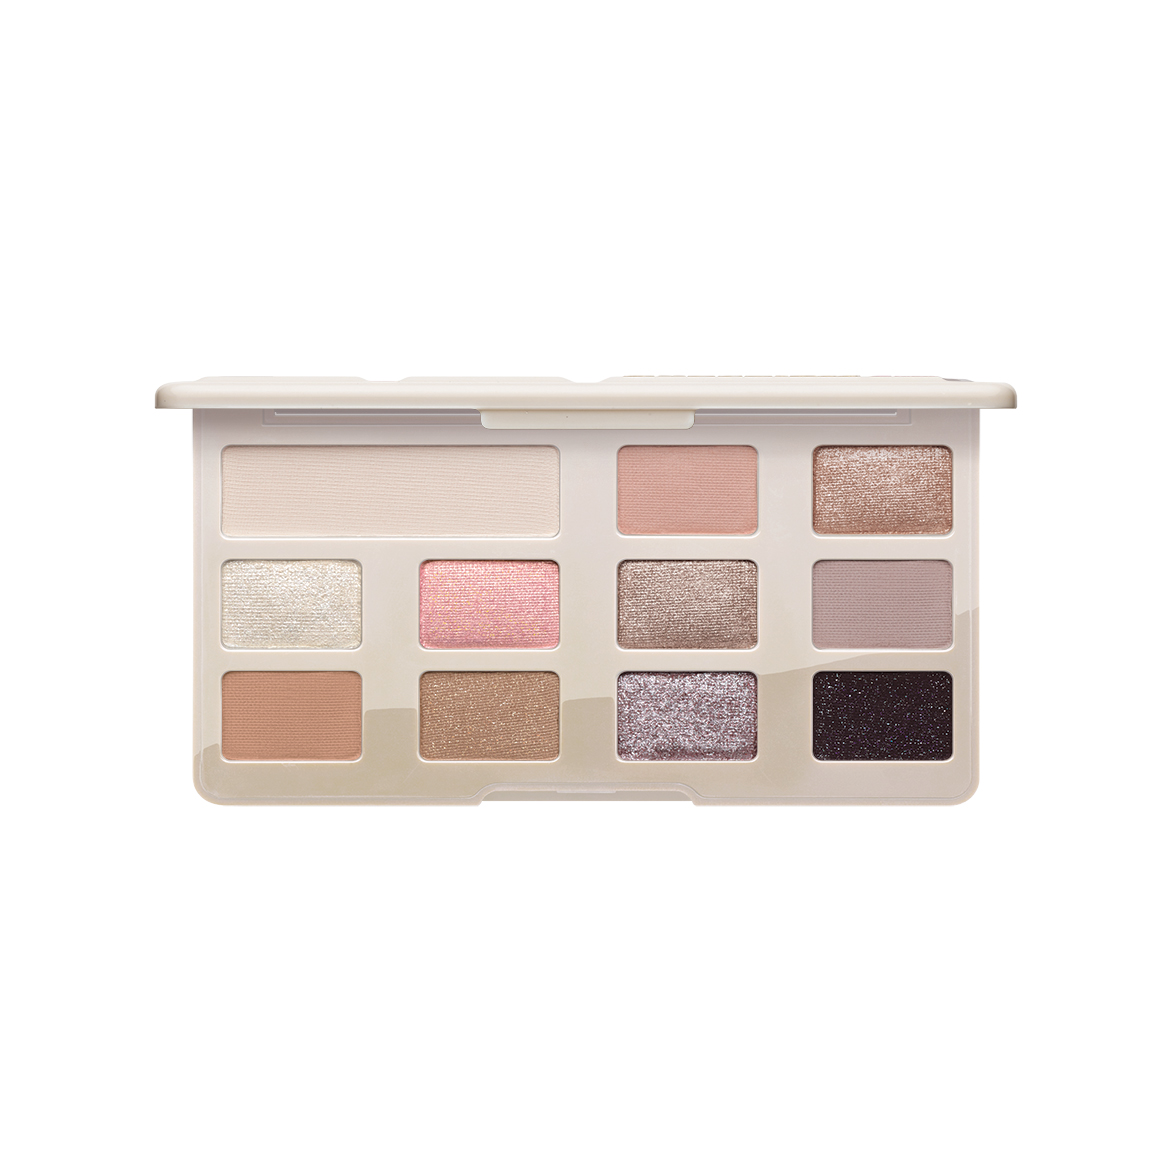 Too Faced White Chocolate Chip Eye Eyeshadow Palette